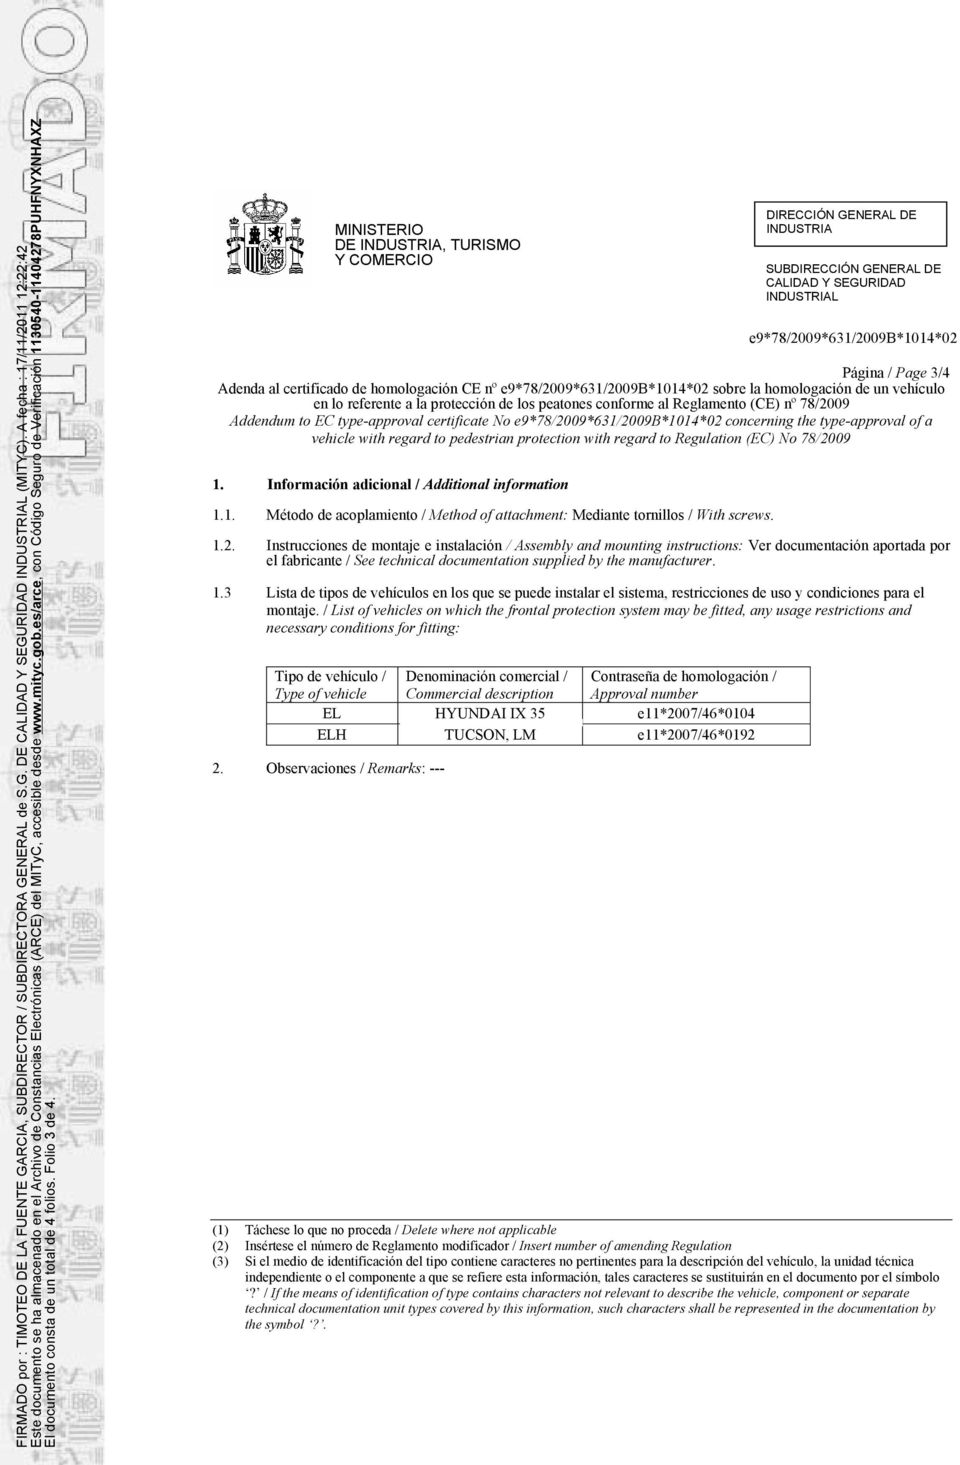 78/2009 Addendum to EC type-approval certificate No concerning the type-approval of a vehicle with regard to pedestrian protection with regard to Regulation (EC) No 78/2009 1.